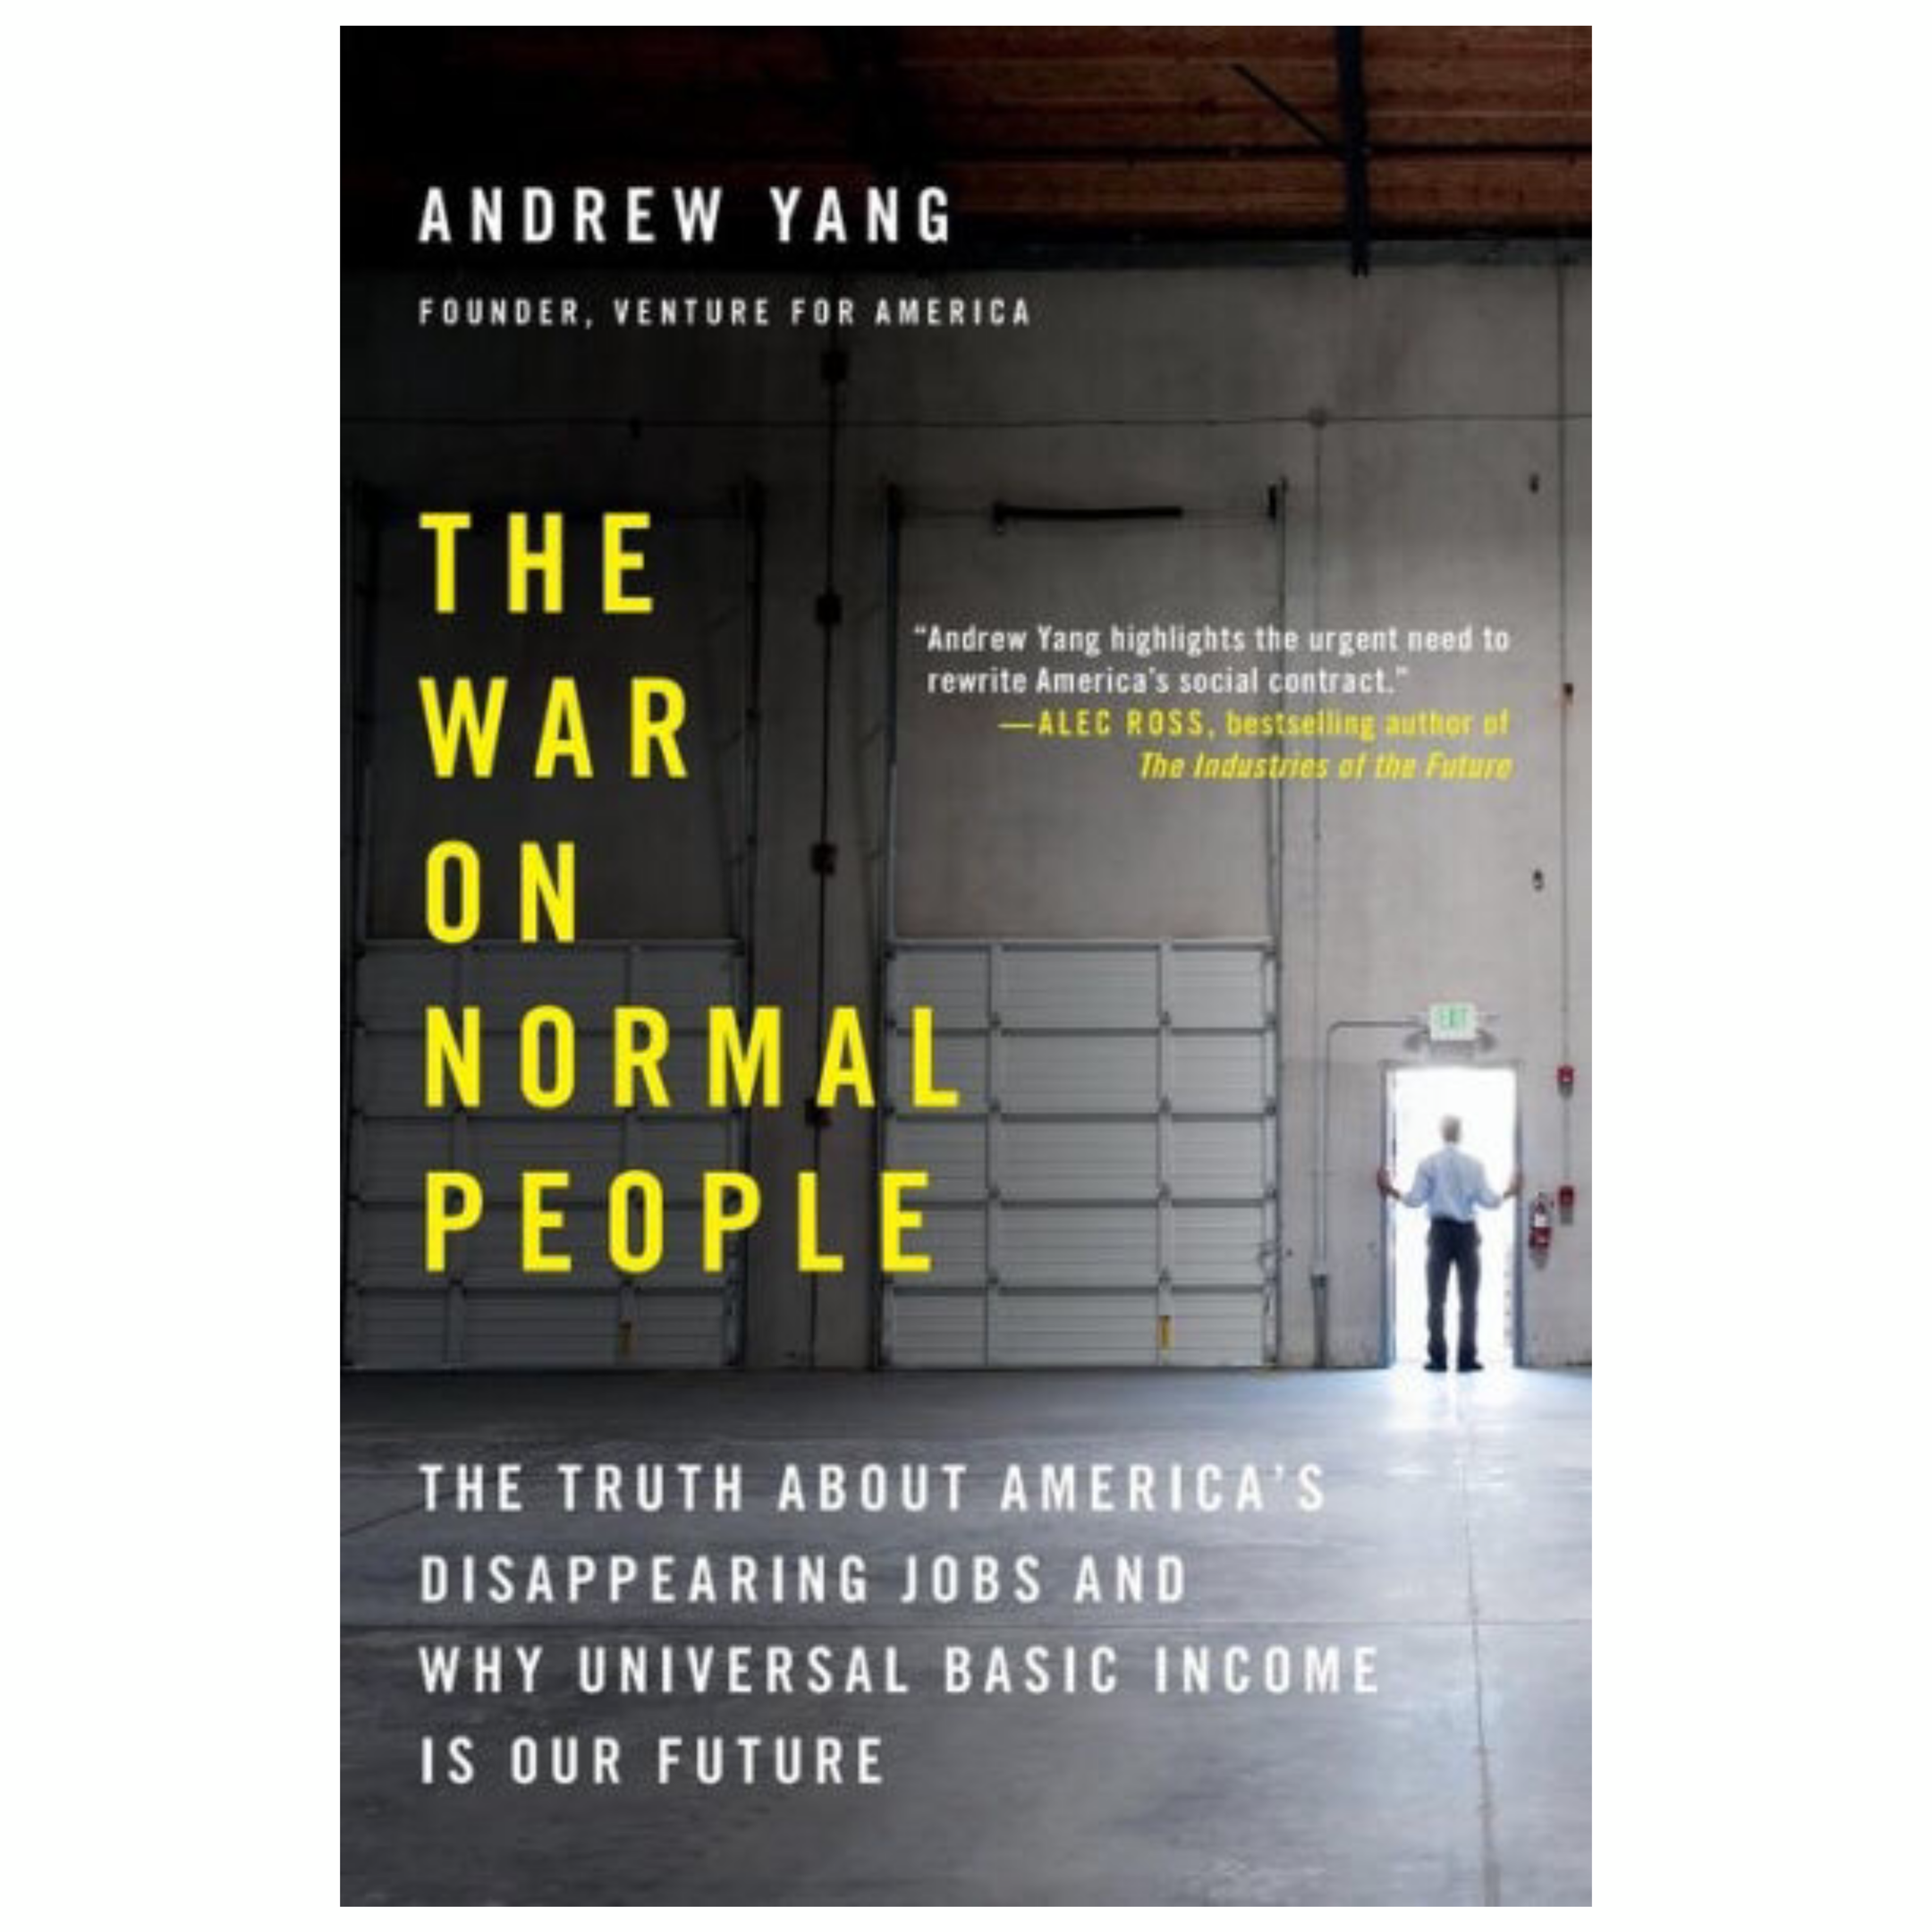 The War on Normal People by Andrew Yang | Cedar + Surf Must Read List